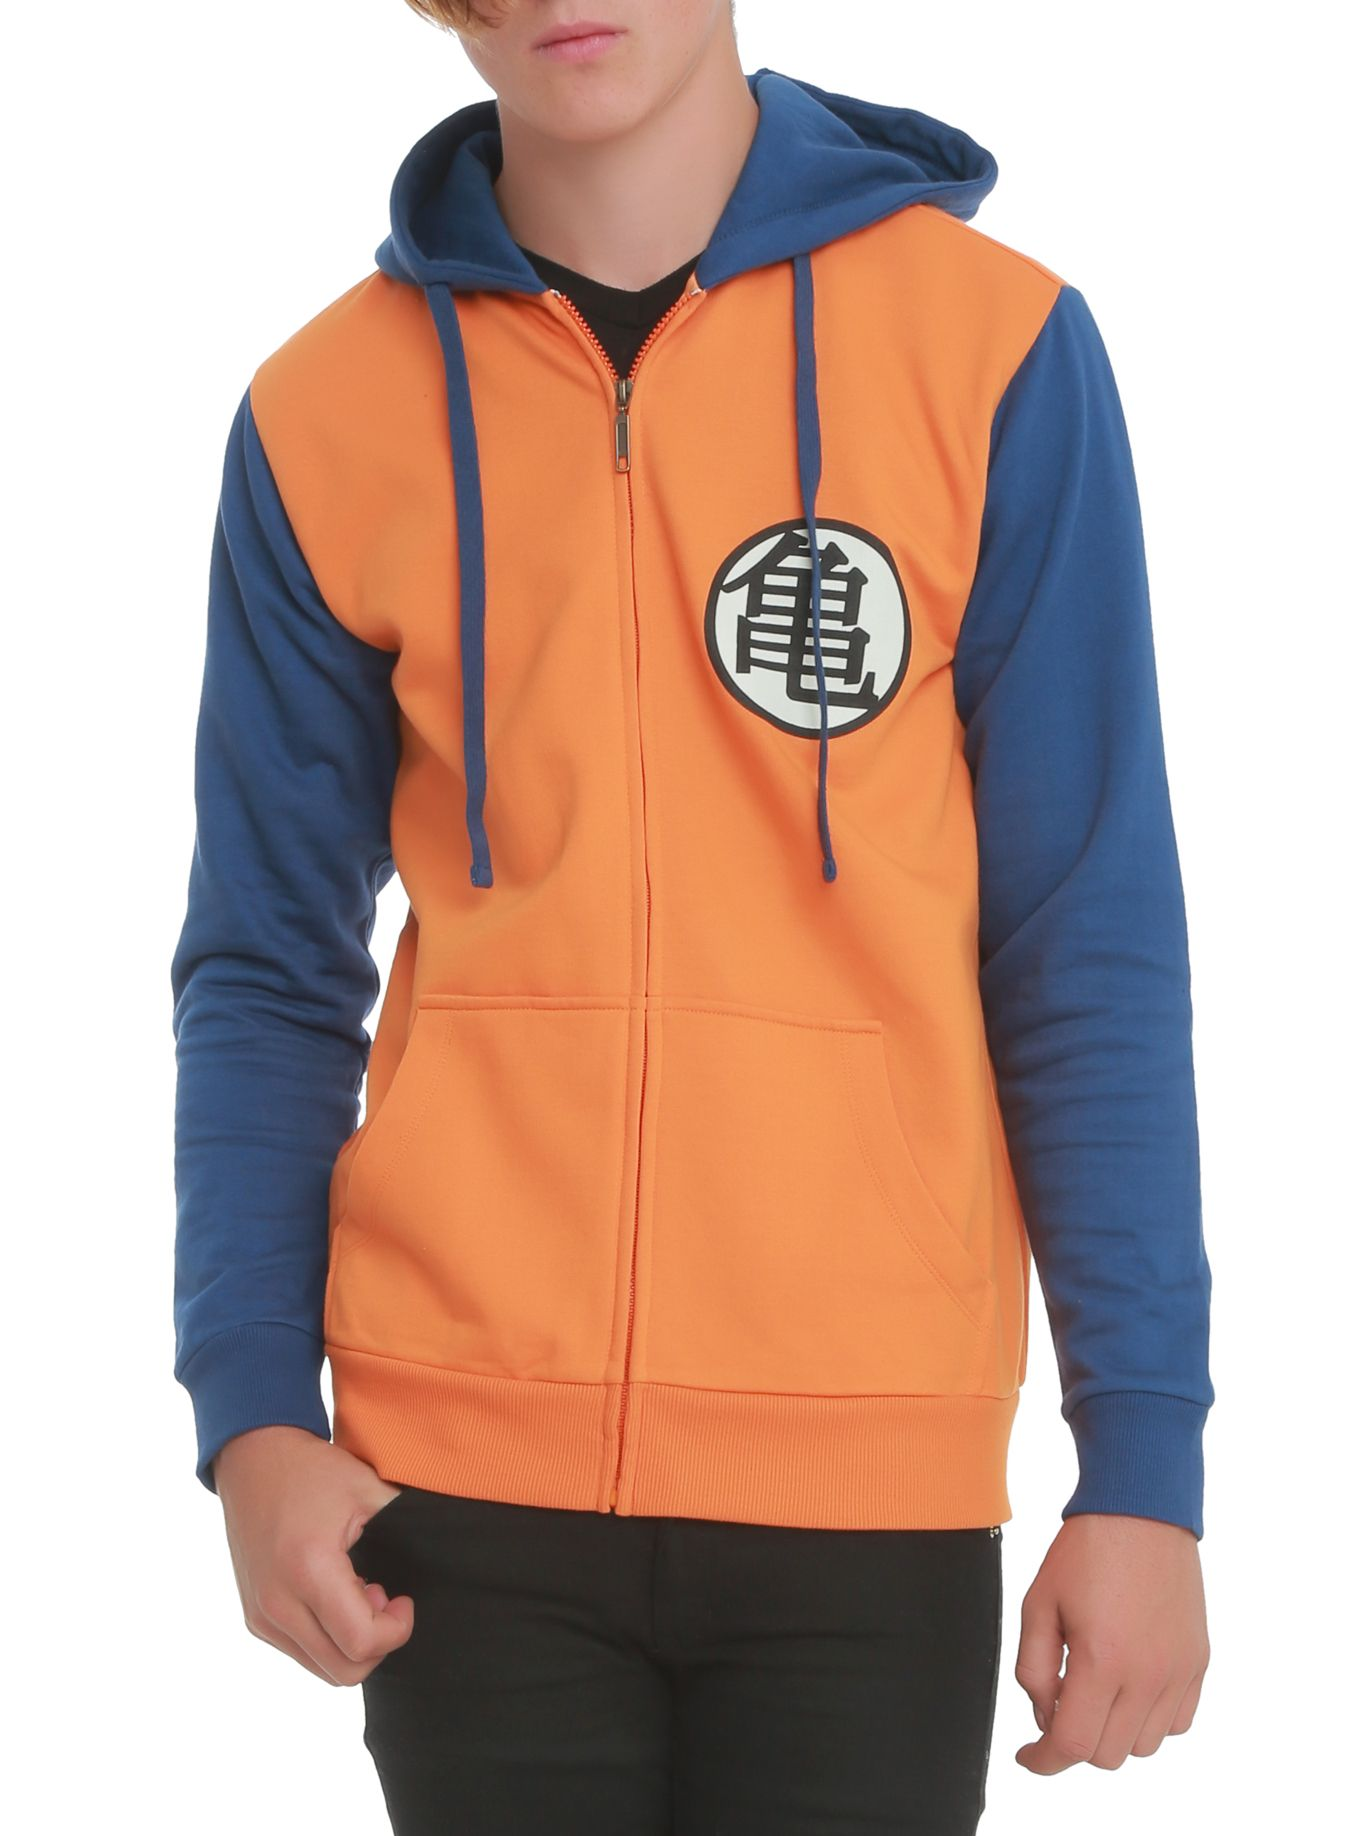 Dragon Ball Z Kame Symbol Contrast Zip Off Hoodie Wish List